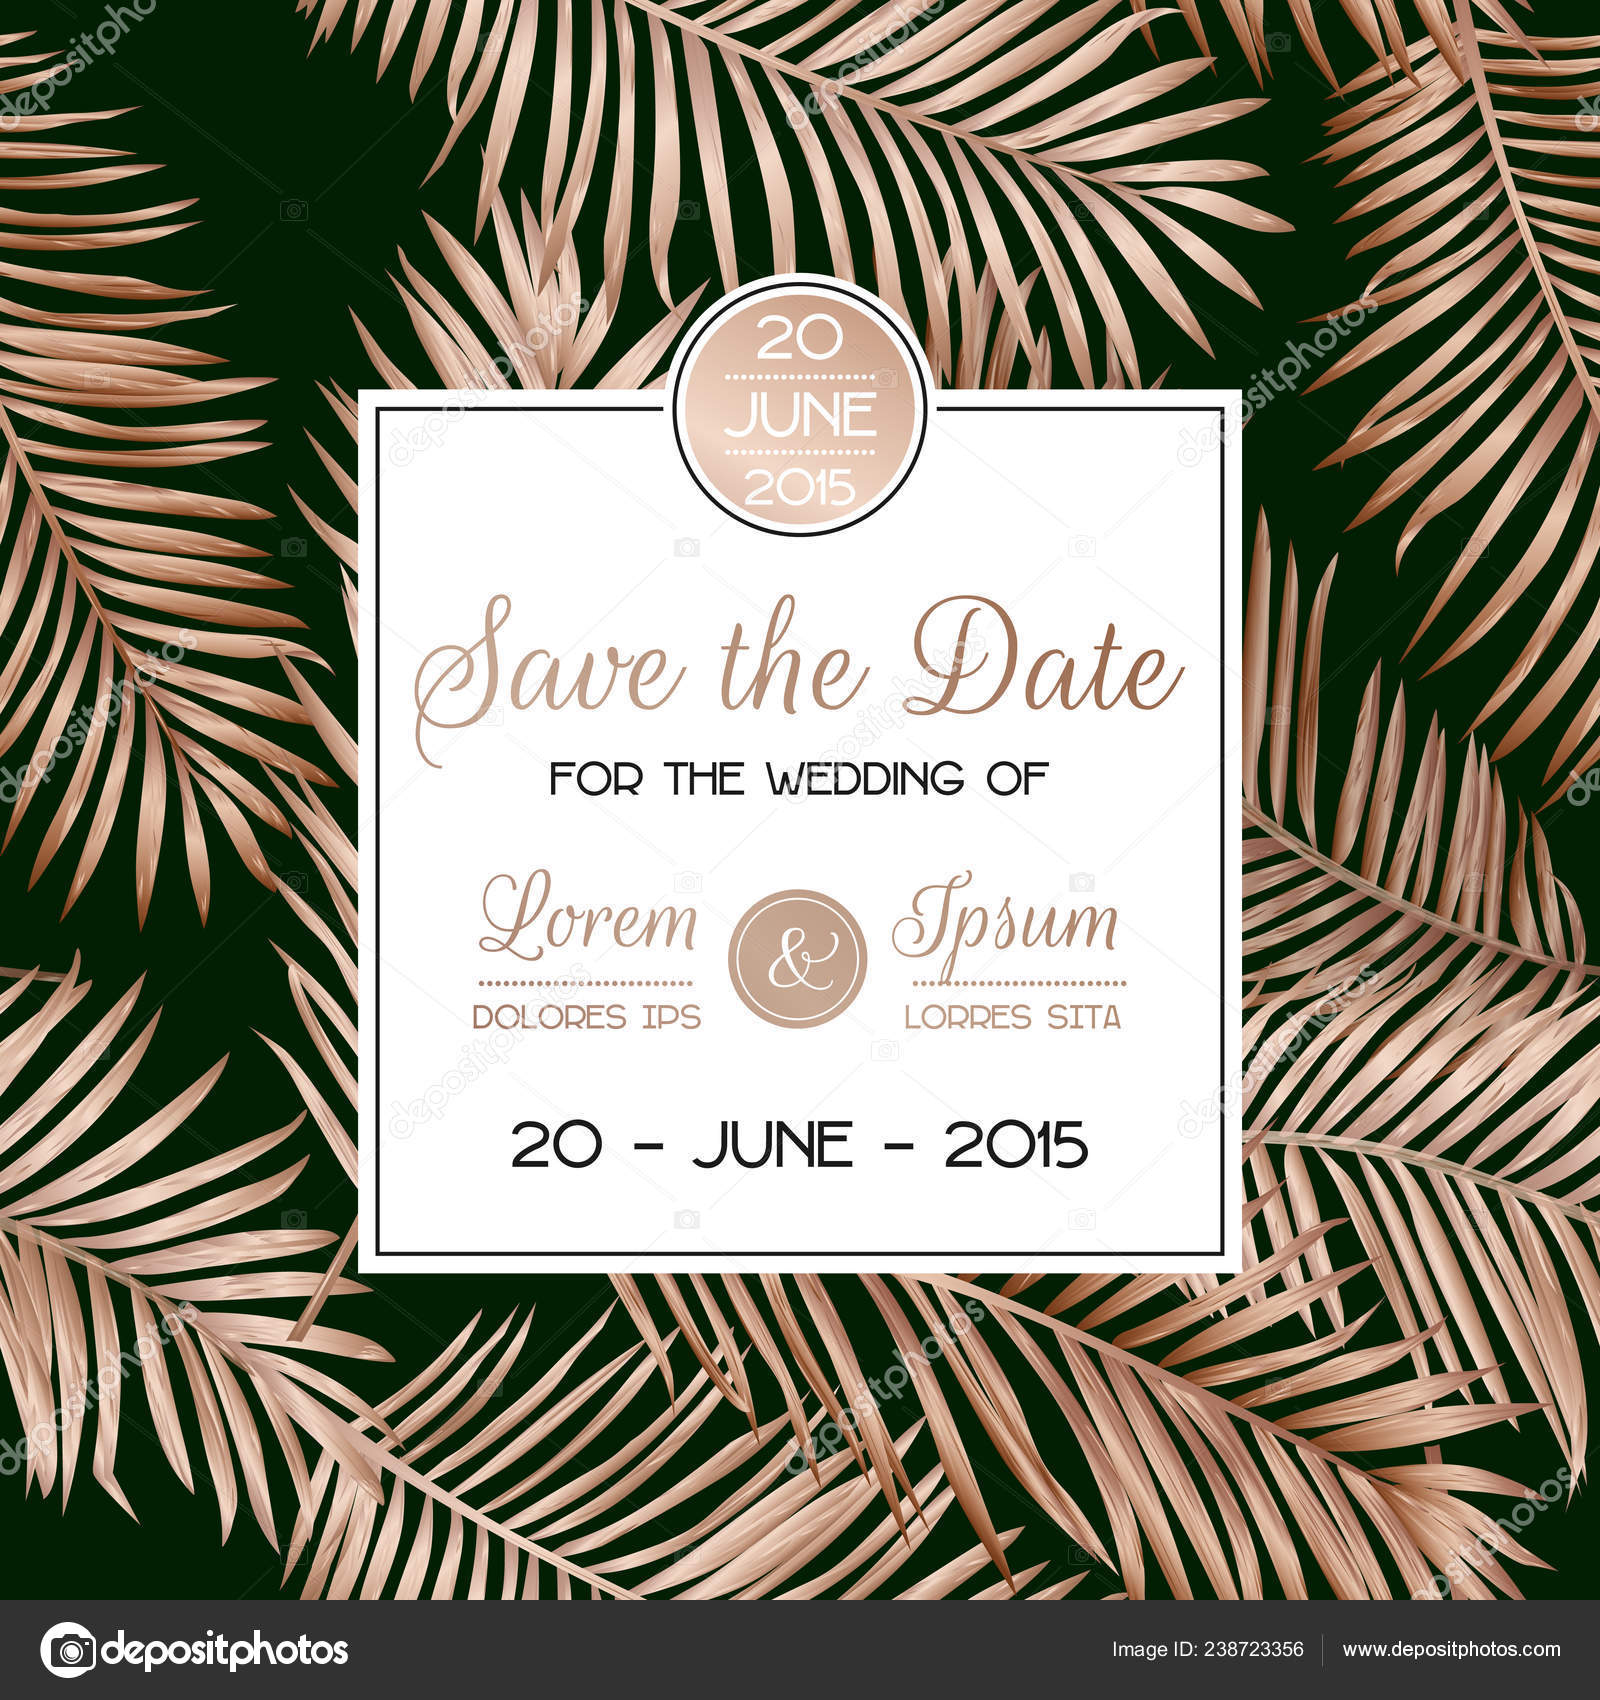 Palm Leaf Invitation Template Wedding Tropical Palm Leaves Invitation Card Save The Date Template With Golden Foil Design Luxury Floral Tropic Rsvp Layout Vector Illustration Stock Vector C Woodhouse 238723356 See more ideas about tropical invitations, invitations, tropical. palm leaf invitation template wedding tropical palm leaves invitation card save the date template with golden foil design luxury floral tropic rsvp layout vector illustration stock vector c woodhouse 238723356